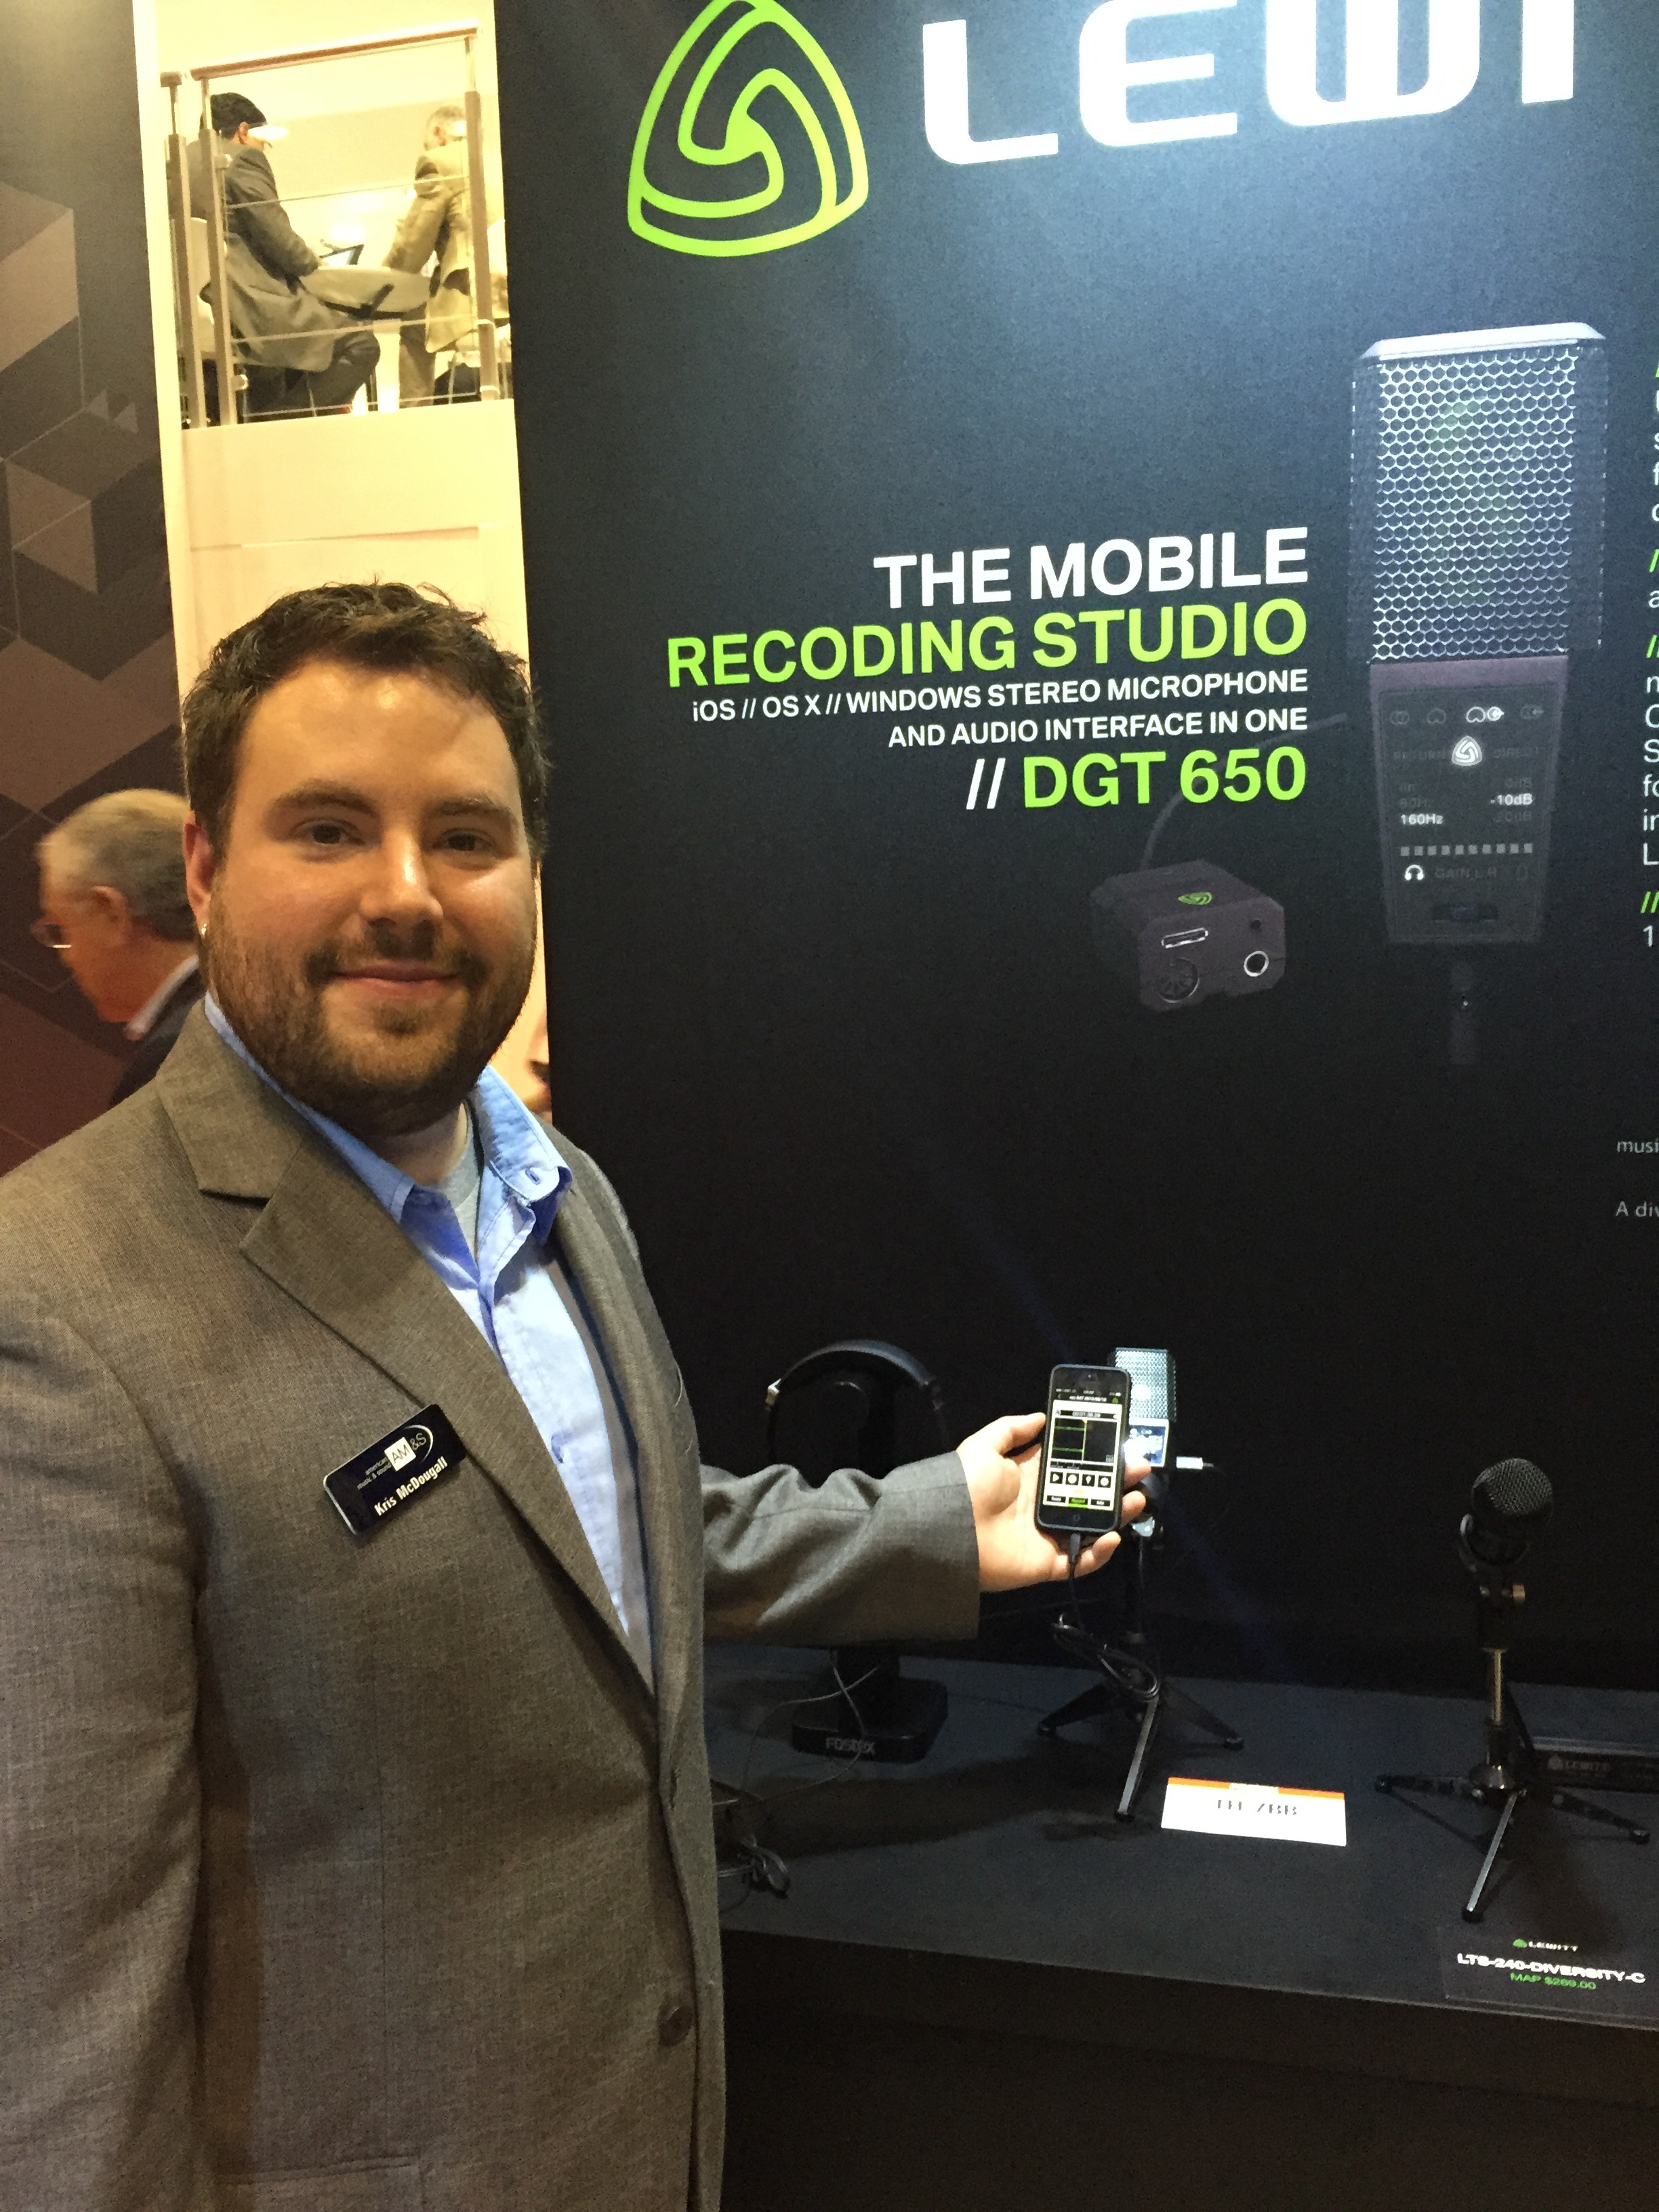 Kris McDougall at InfoComm 2015